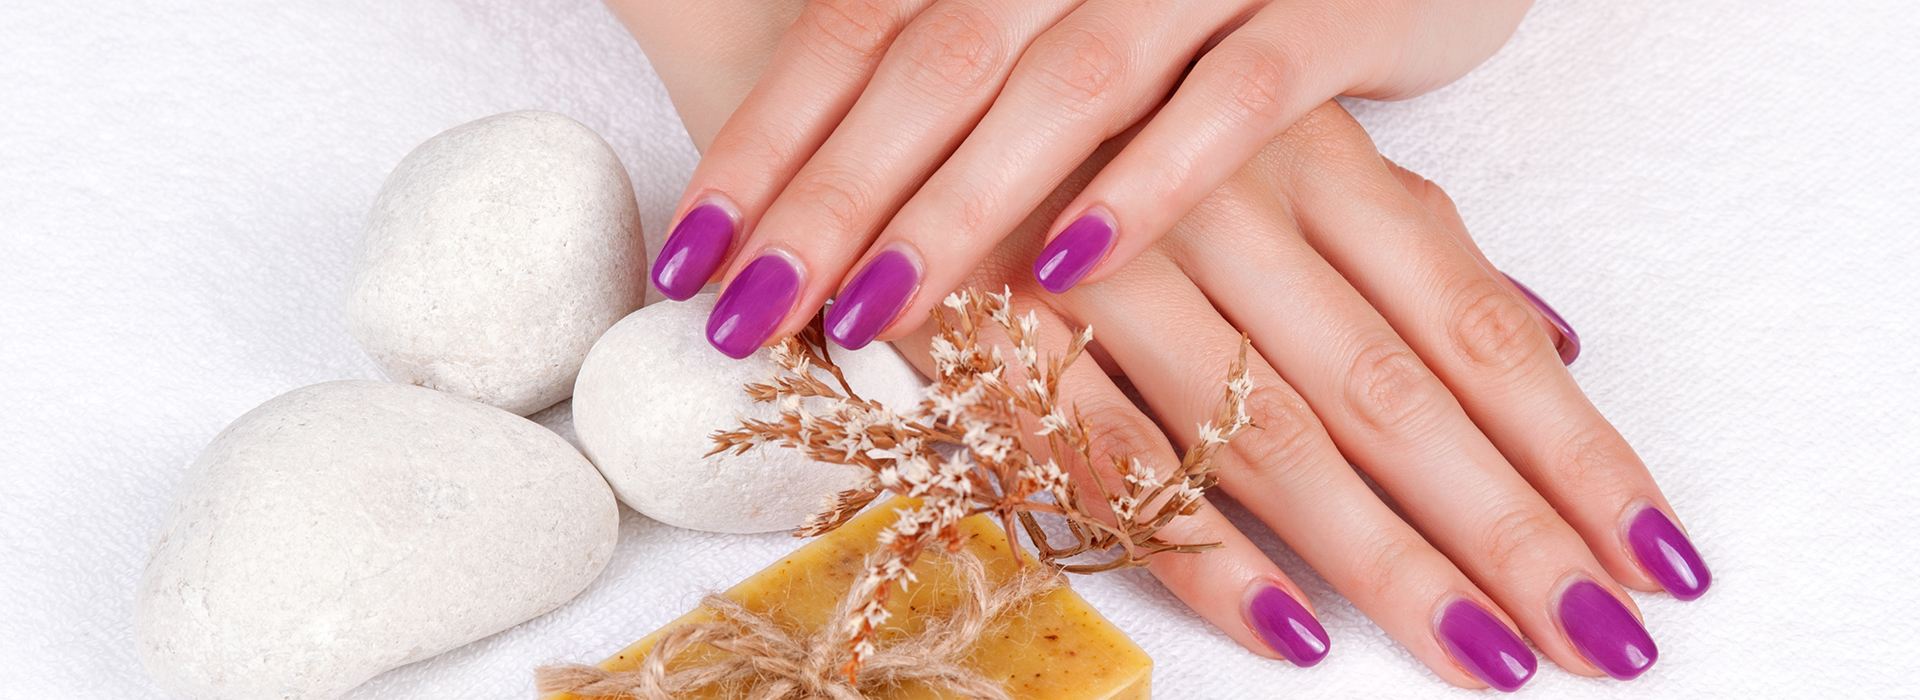 Magic Star Nails - Nail salon in Chicago, IL 60657